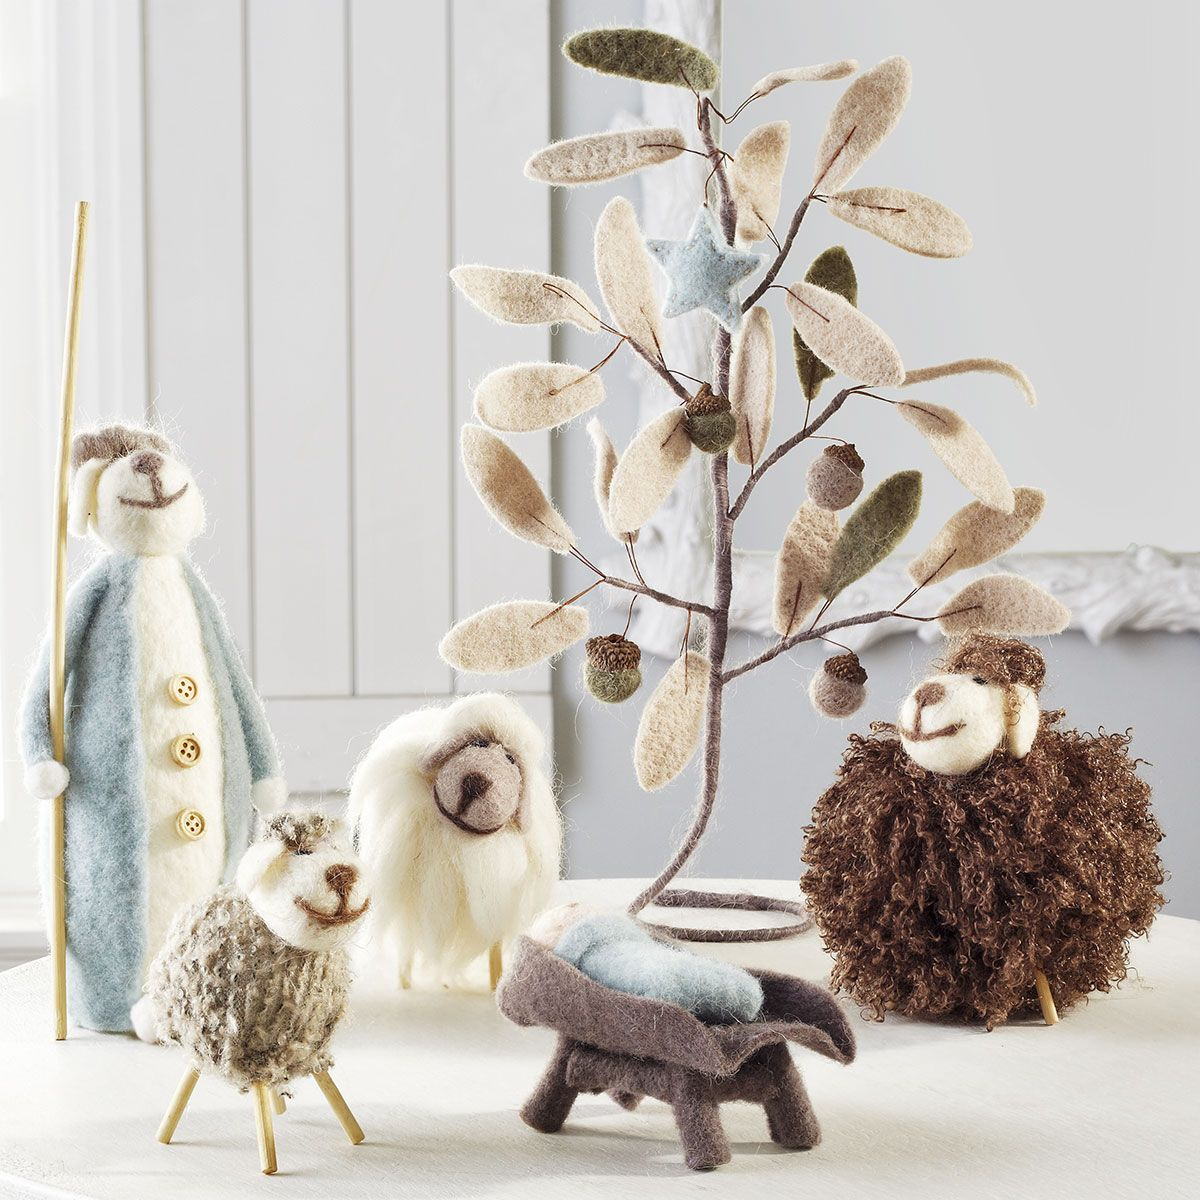 A Baaah-by is Born Felt Nativity from Wisteria. This is so stinkin adorable! I would love to make a nativity for kids in this style.